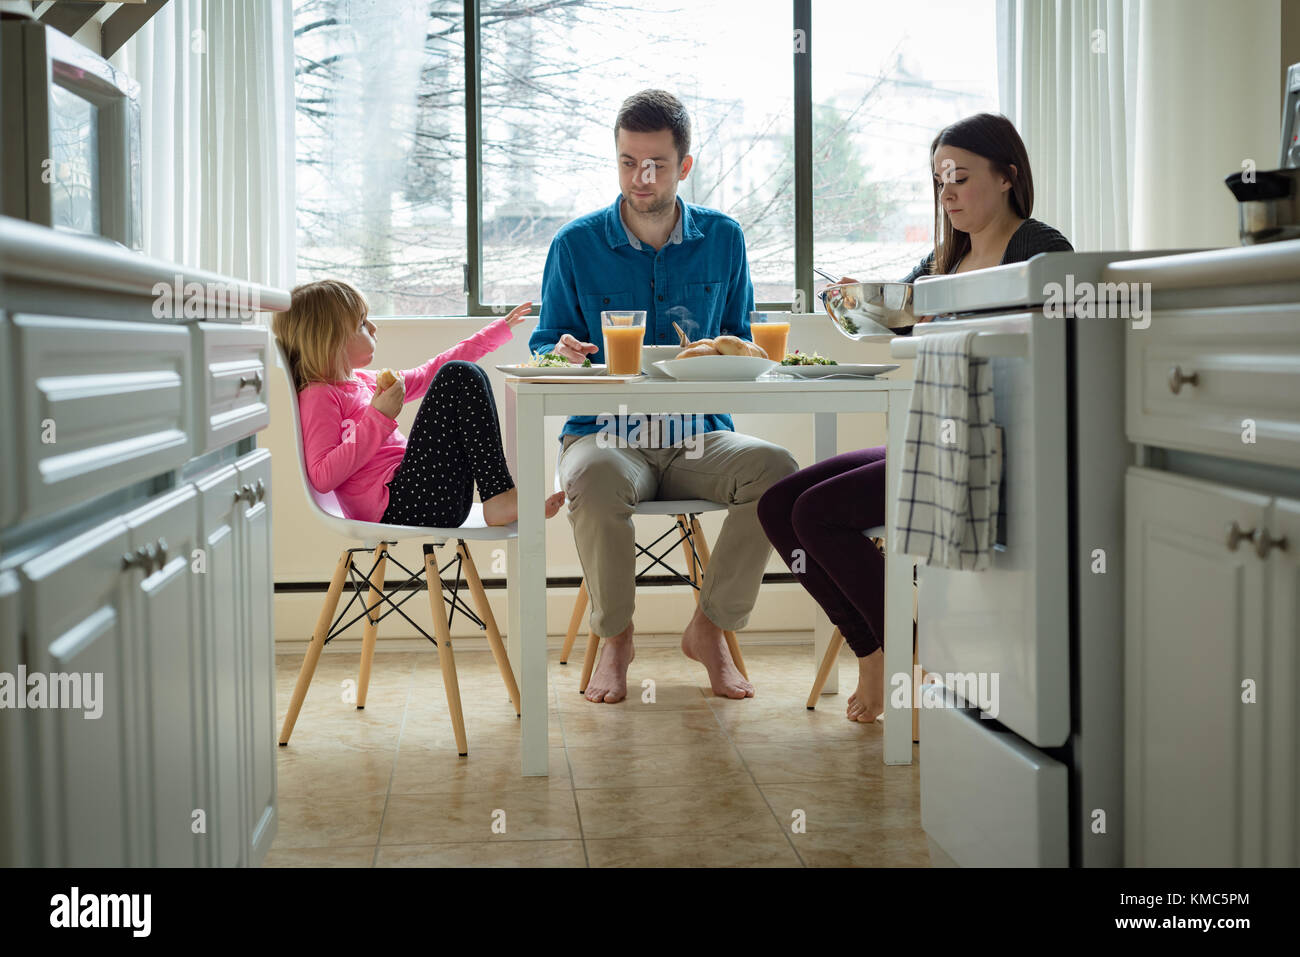 Family having breakfast in kitchen - Stock Image